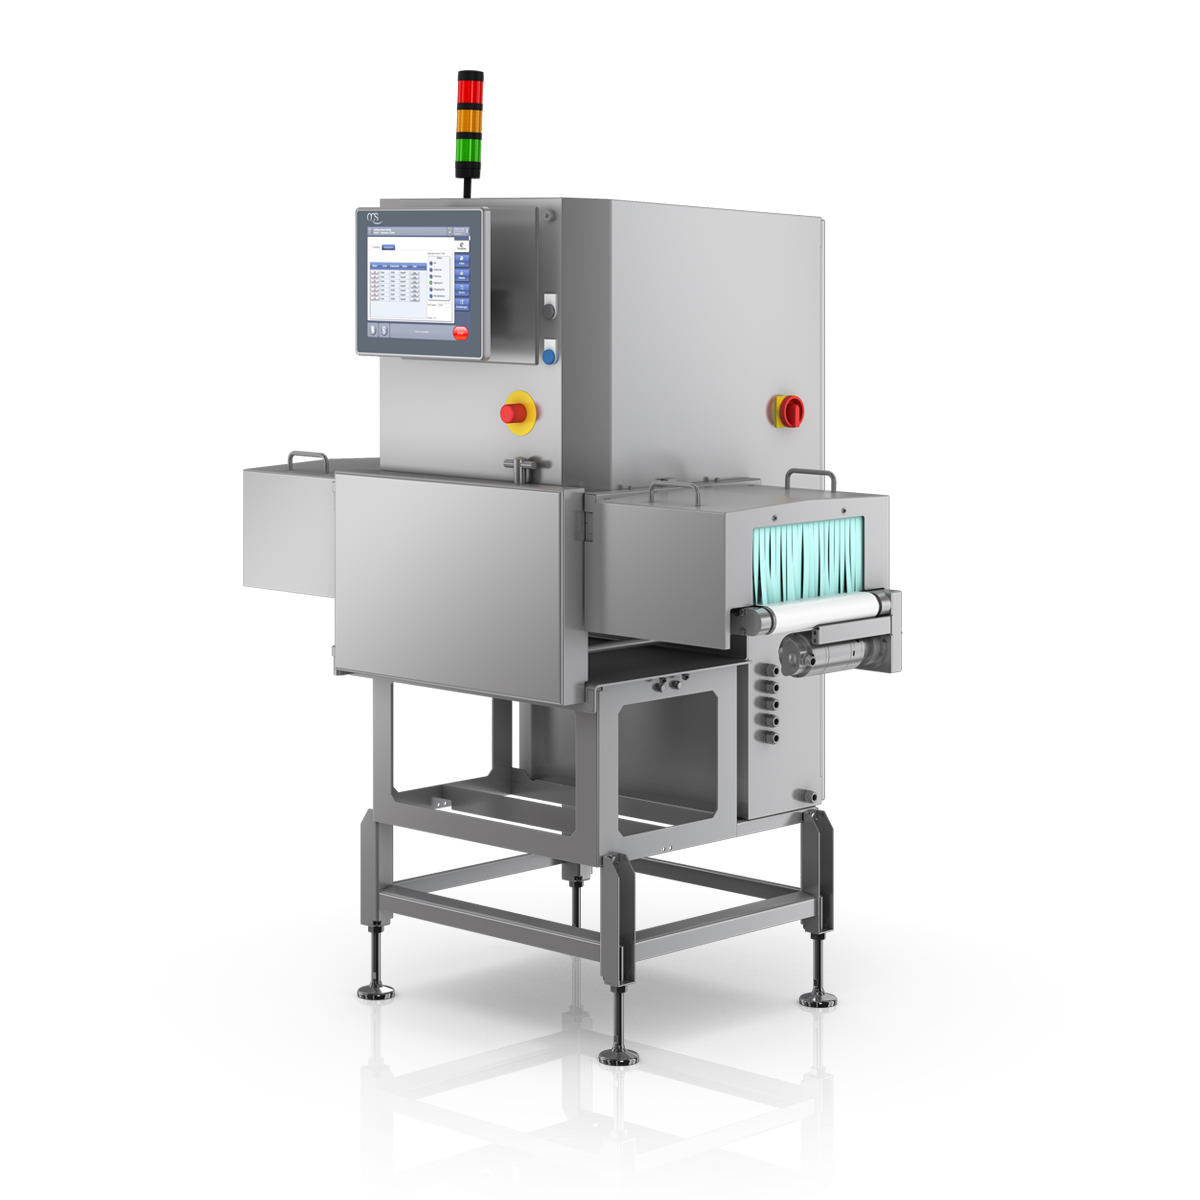 E Series x-ray inspection system